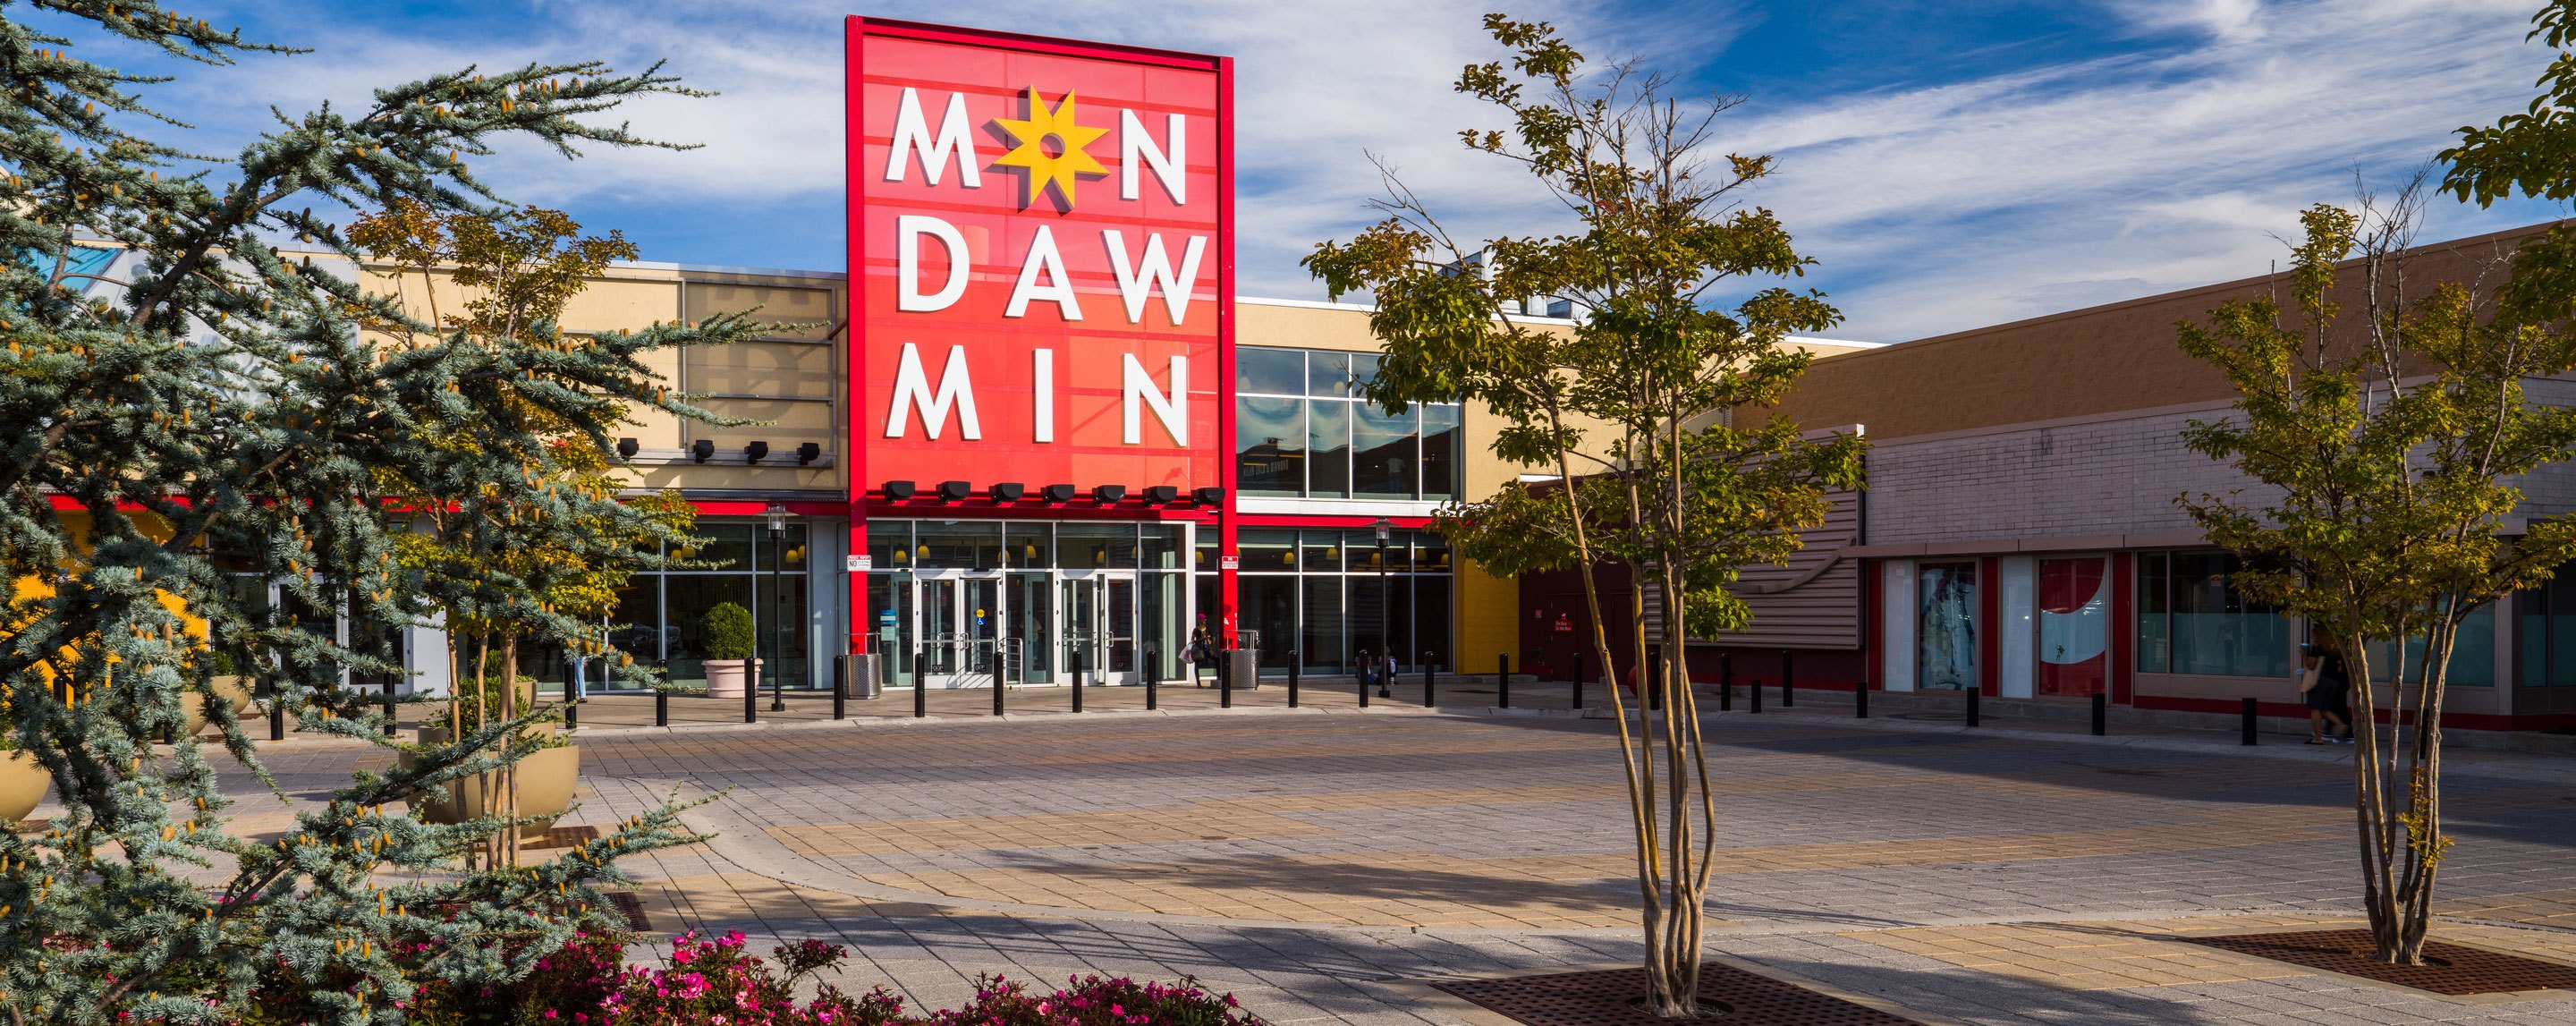 """A very large red sign reading """"Mondawmin"""" stands outside of a large two story building."""